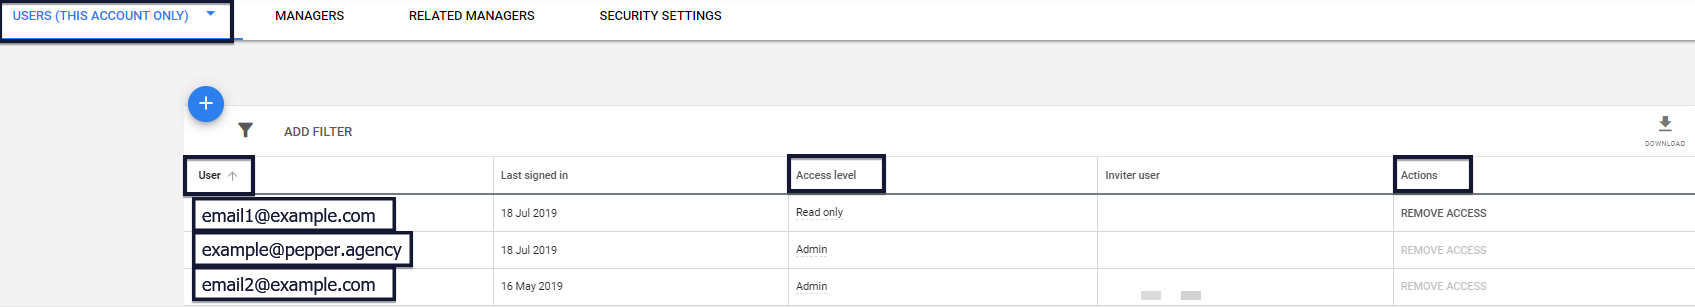 Google Ads account users with access